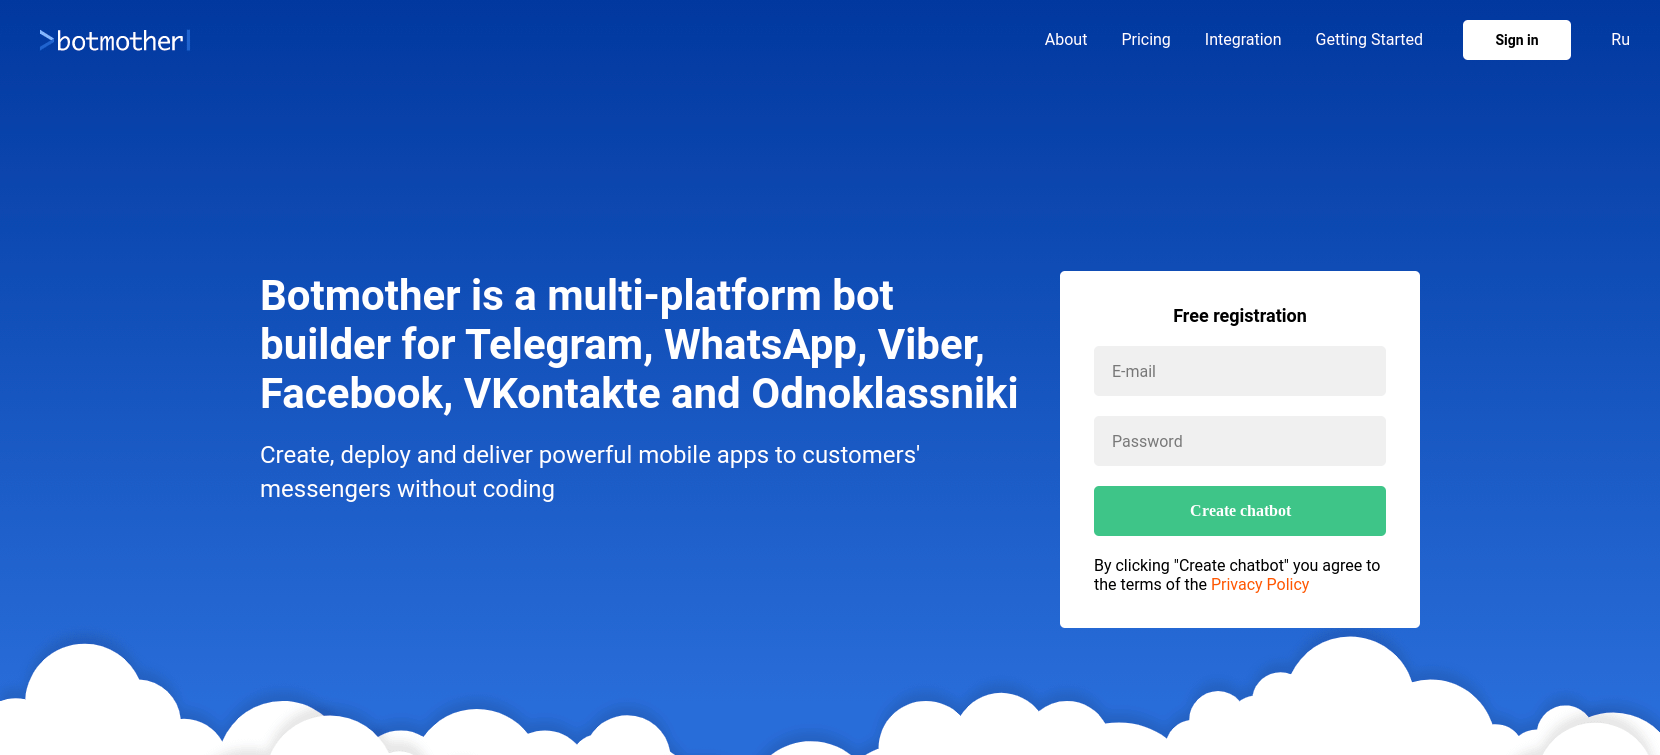 O site do chatbot botmother.